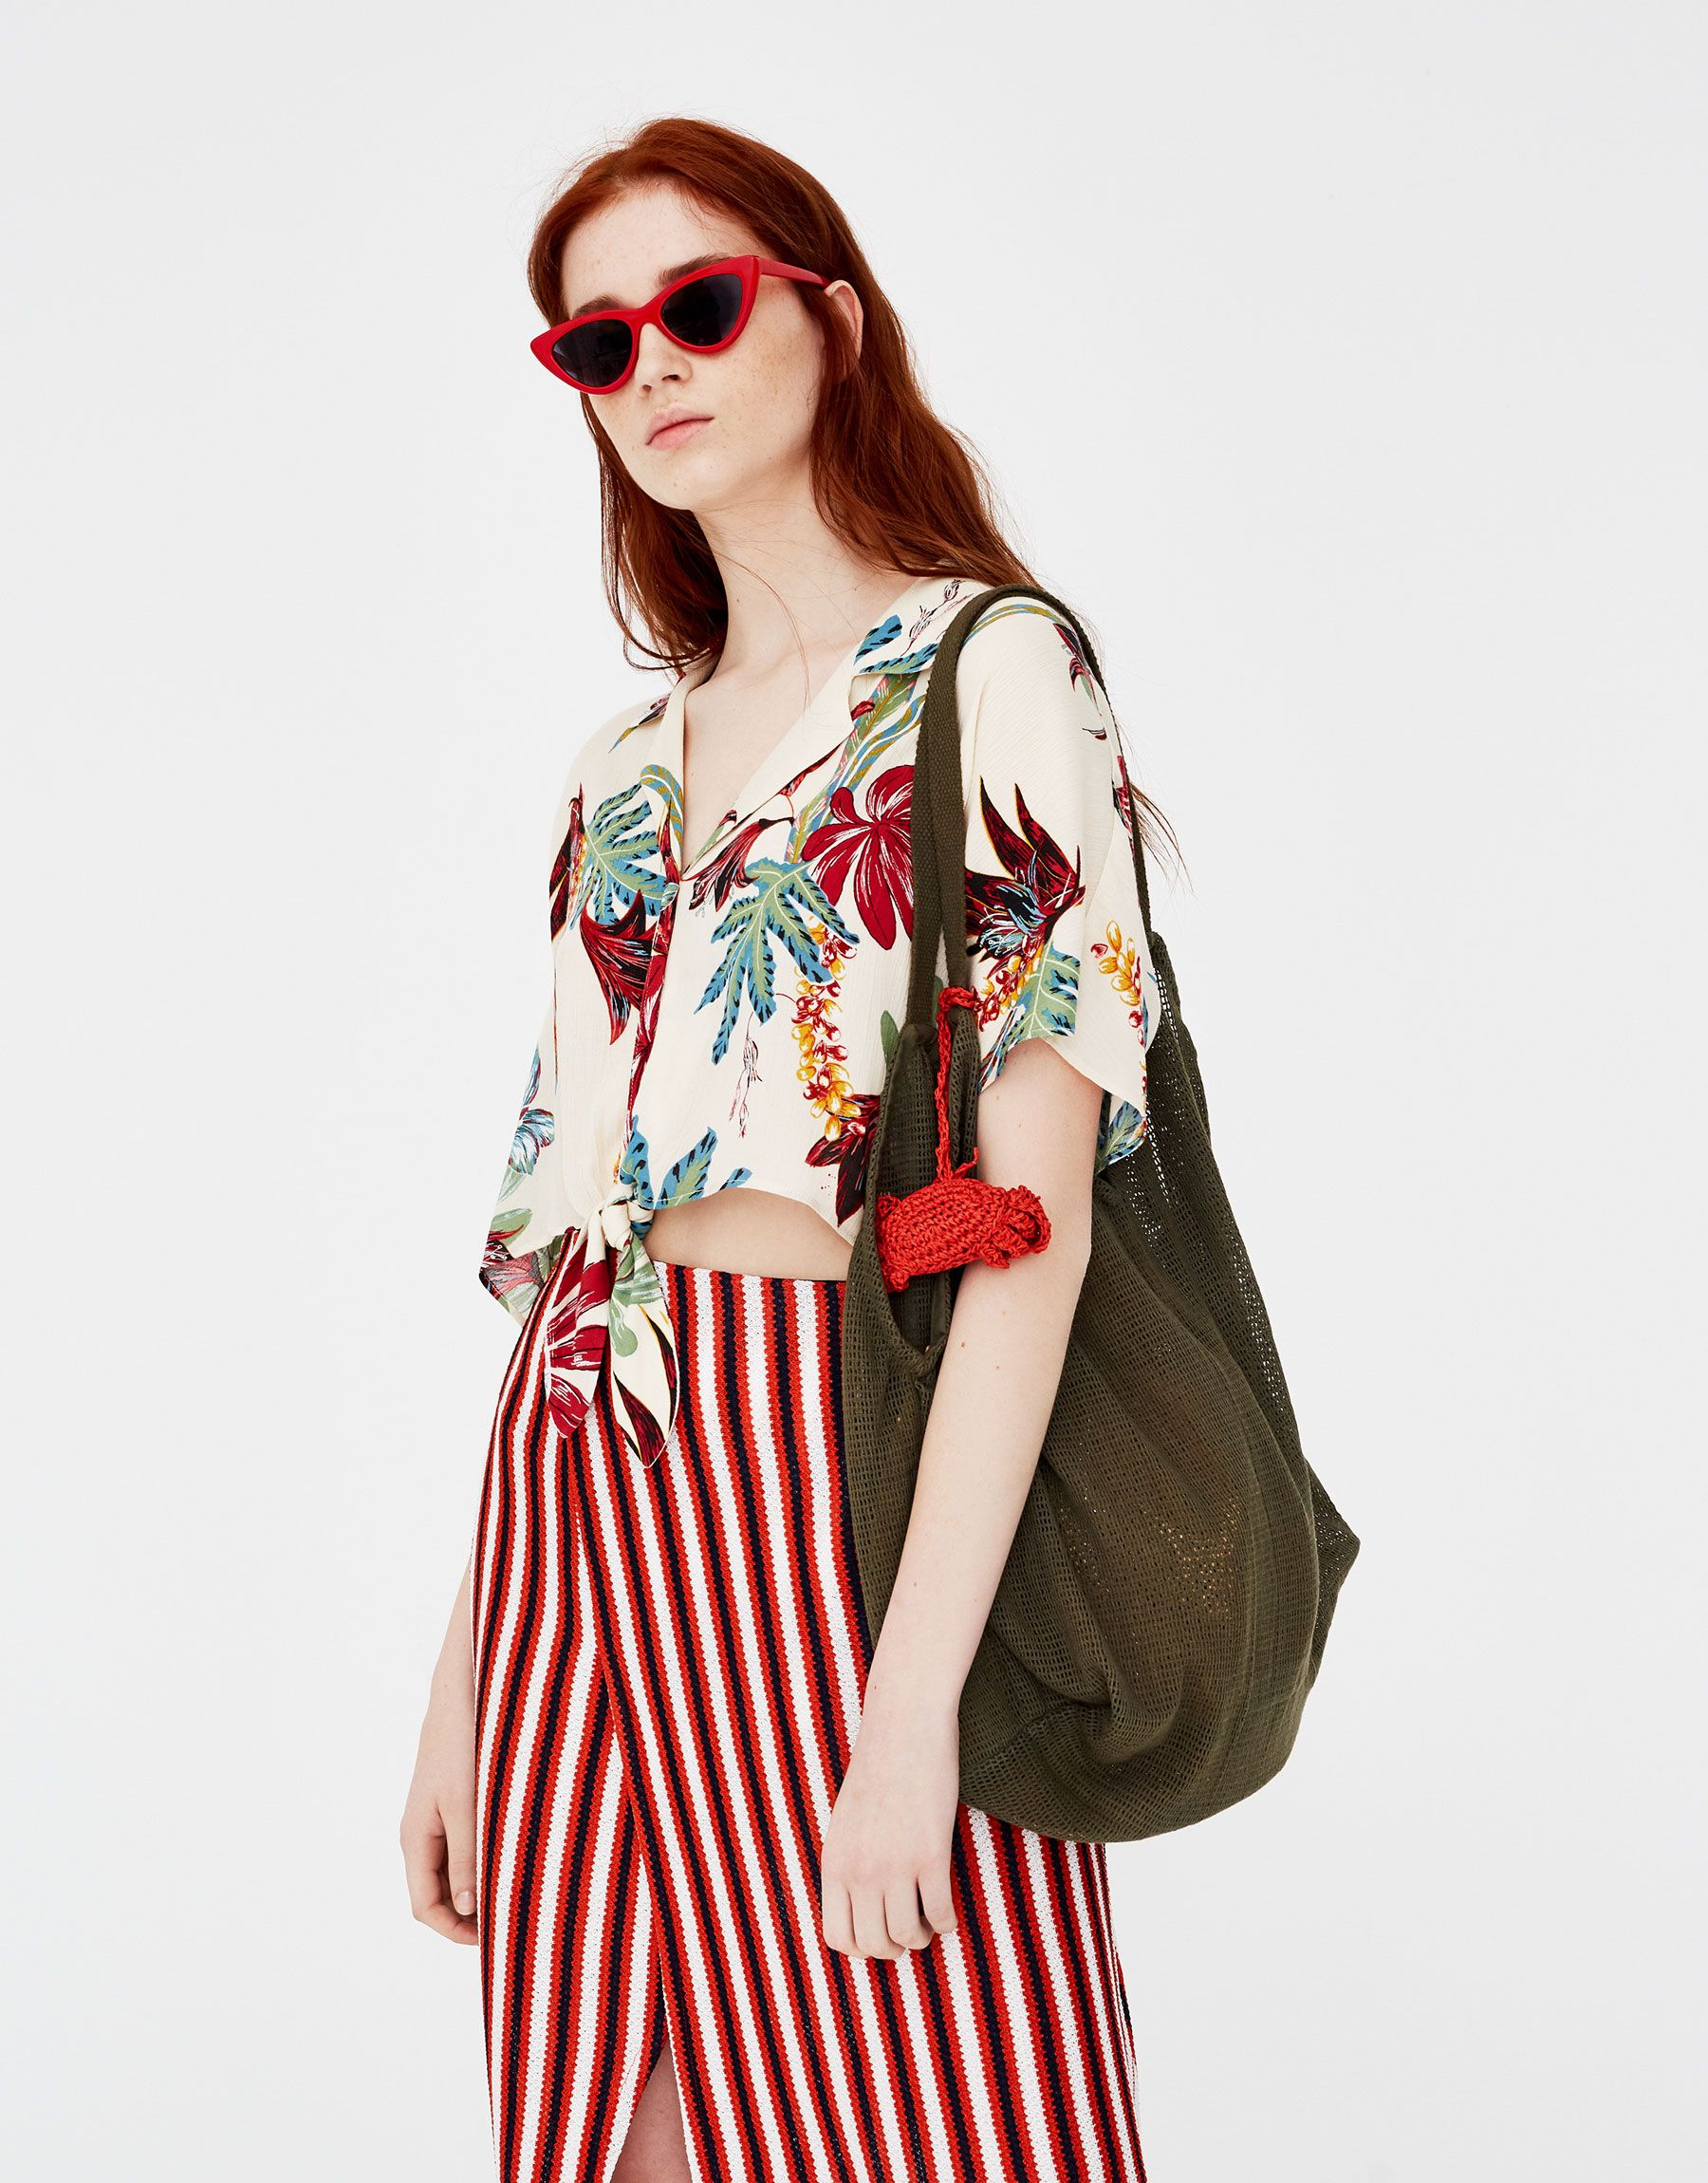 de98698b91 Tropical shirt with knot - New - Woman - PULL BEAR Singapore